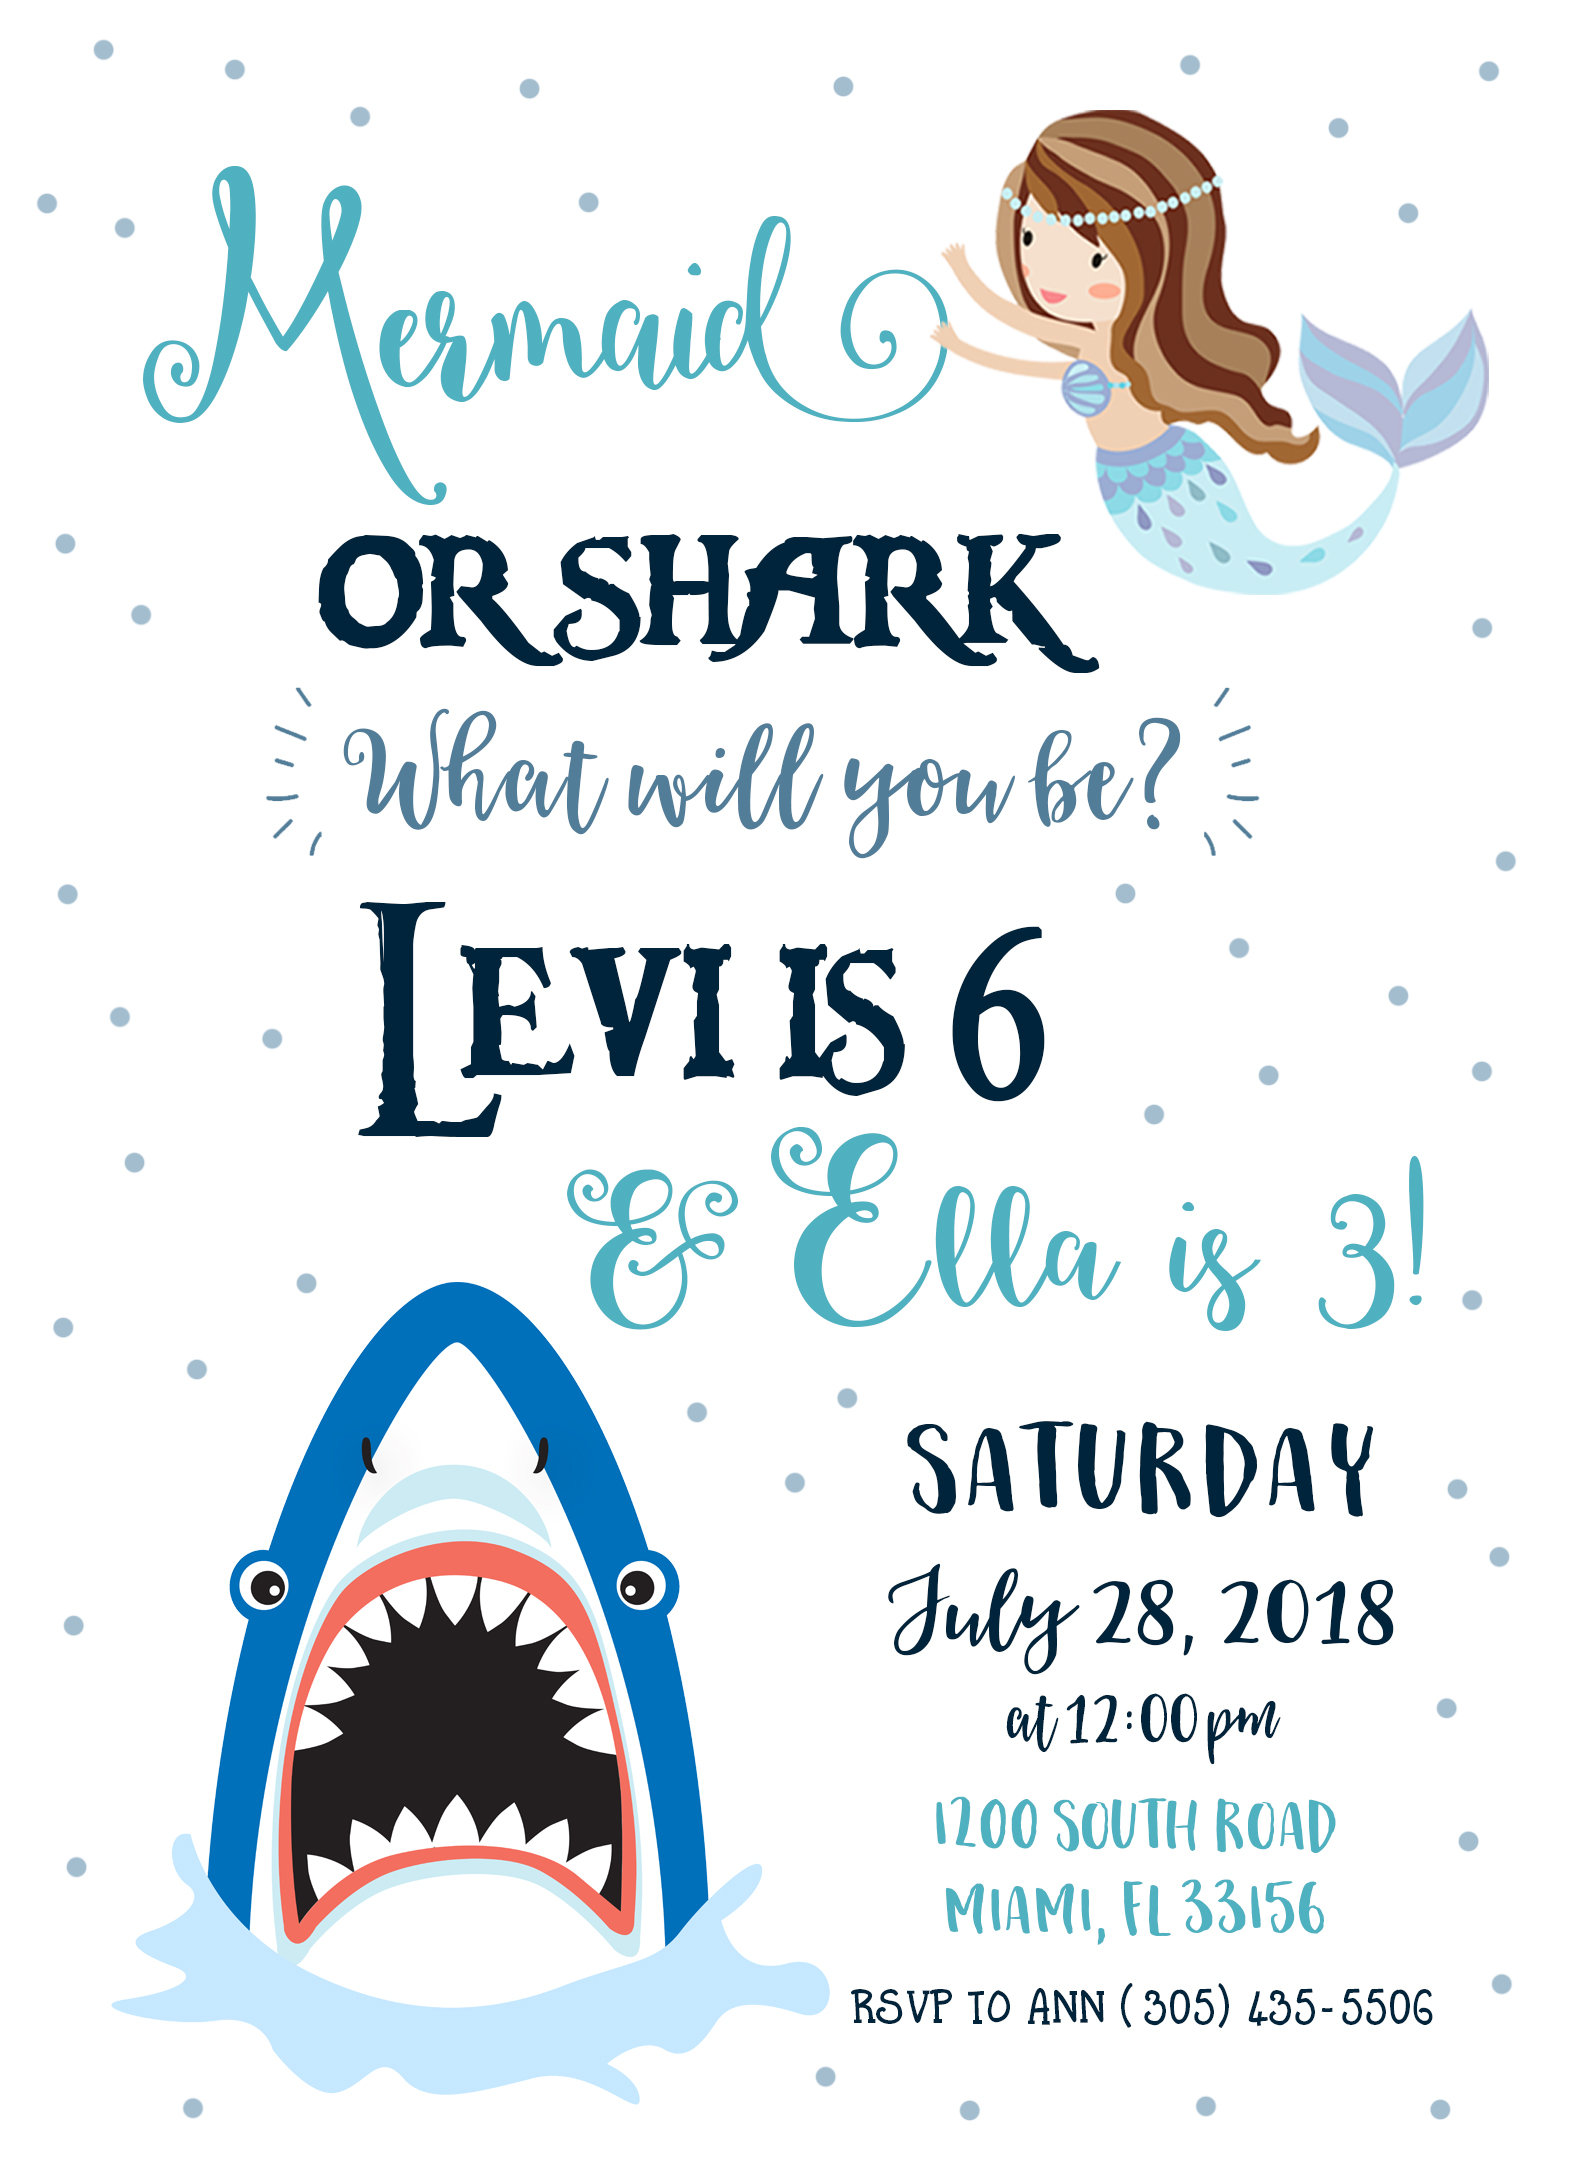 Party Invite Shark Mermaid Boy Girl Birthday Gallery Photo